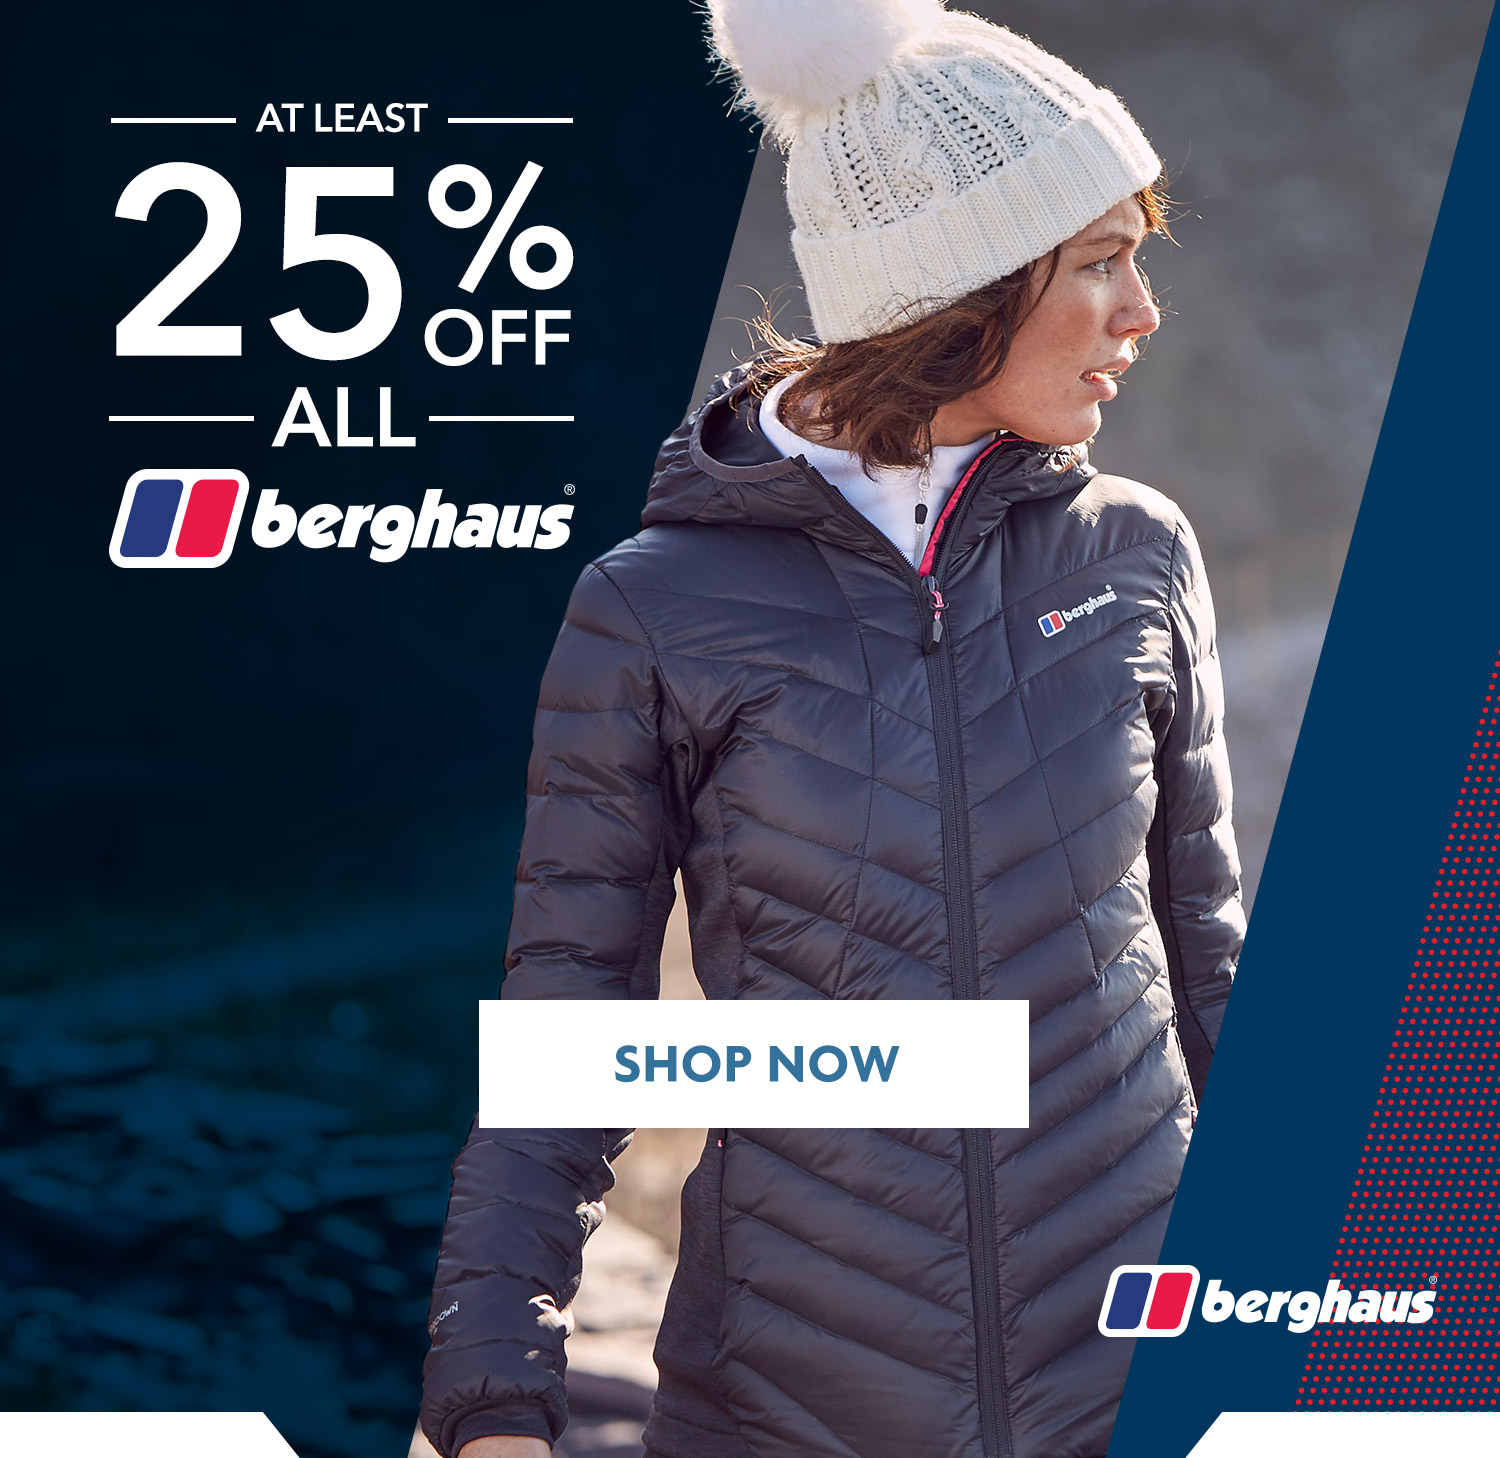 Berghaus - At Least 25% OFF